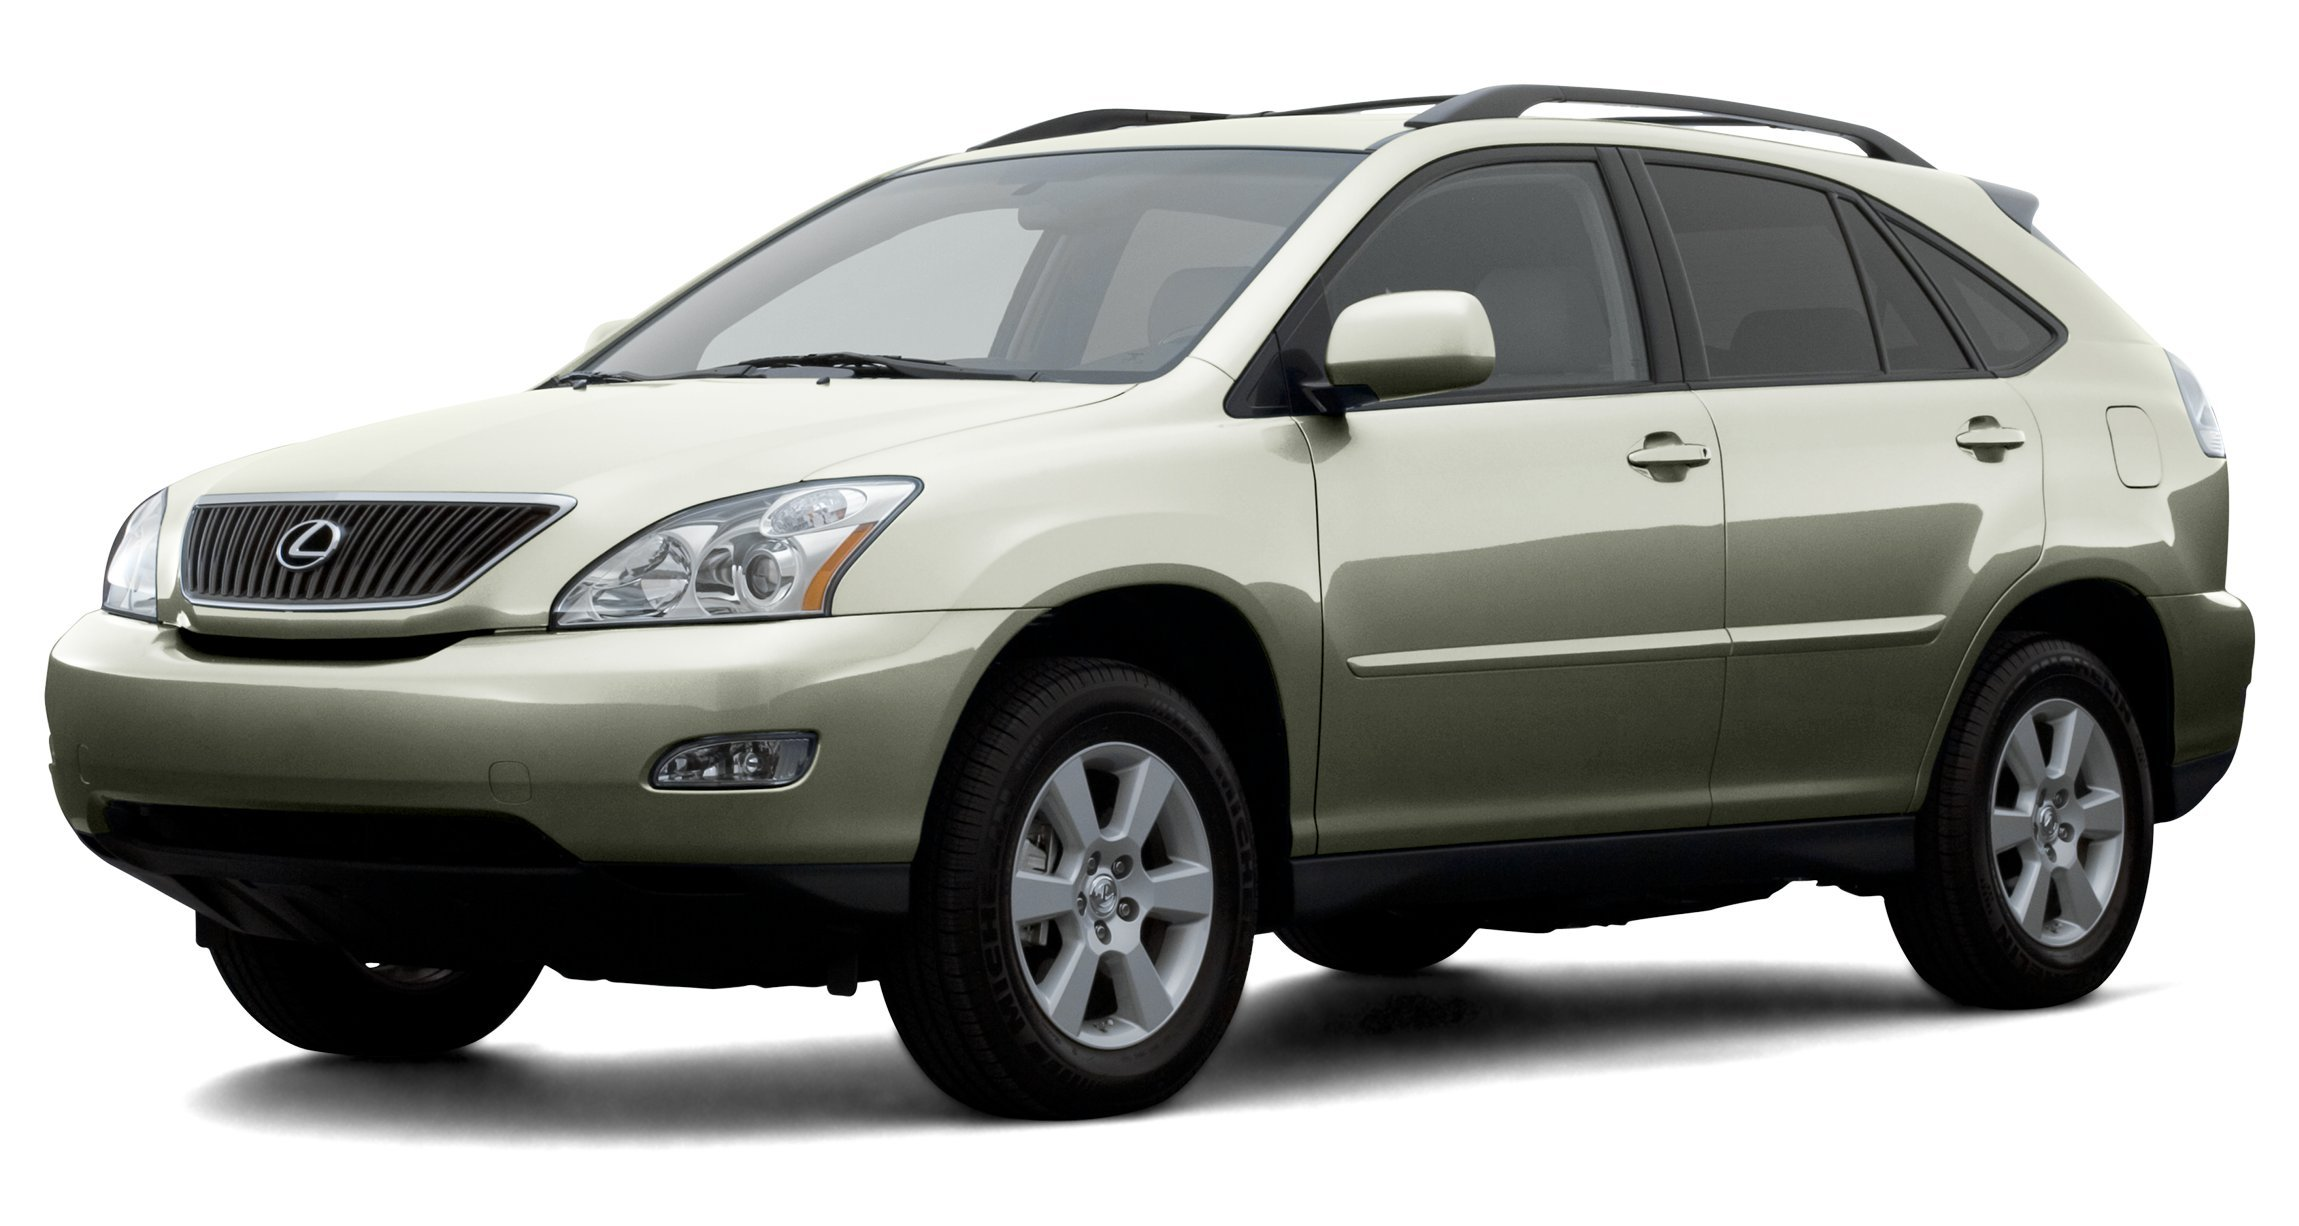 2007 lexus rx350 reviews images and specs vehicles. Black Bedroom Furniture Sets. Home Design Ideas